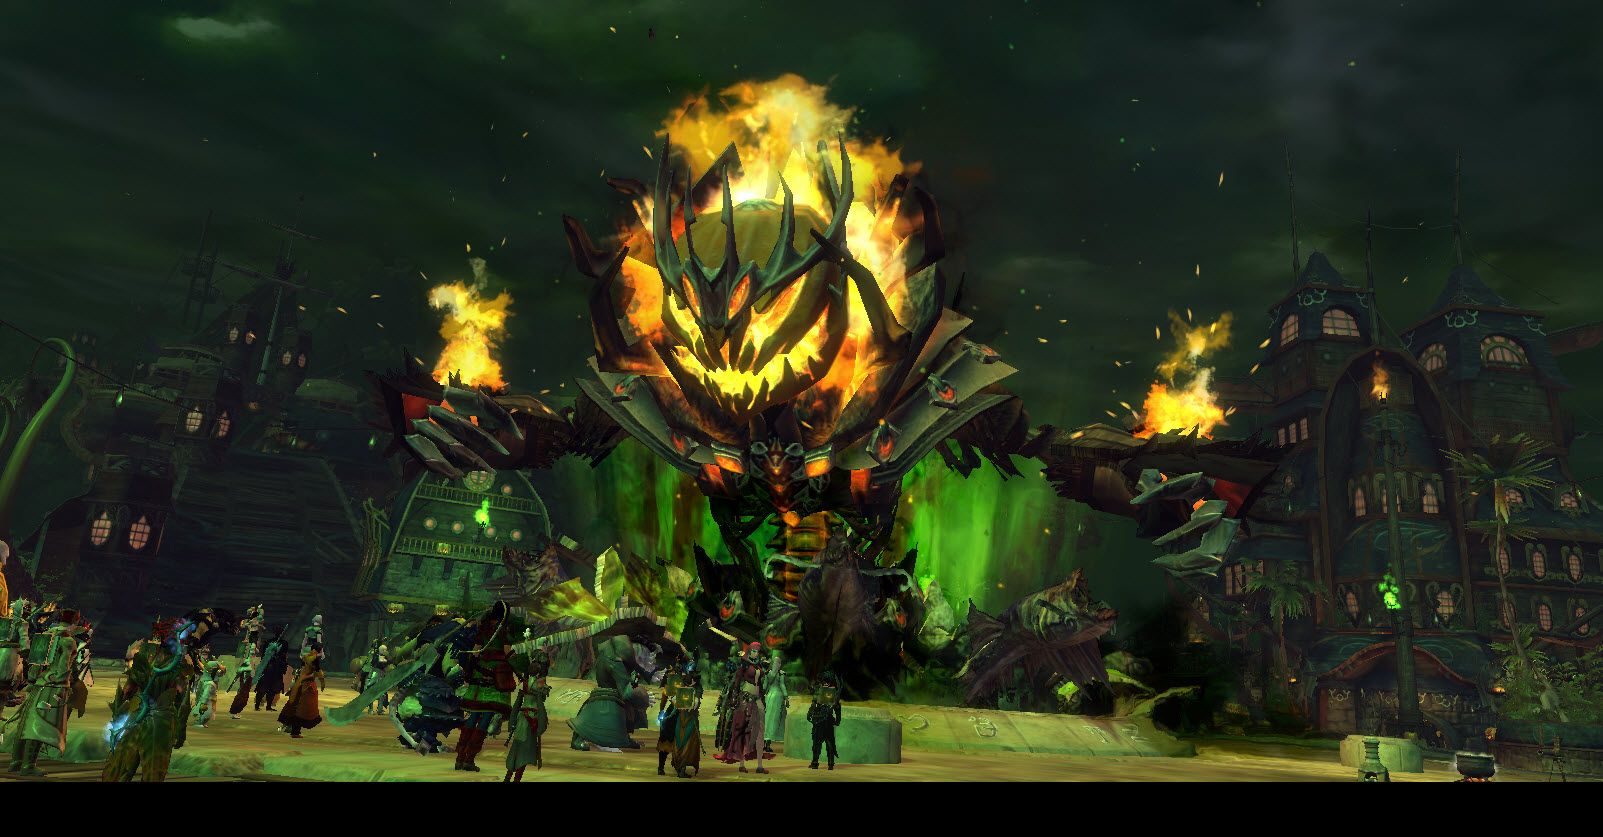 mad king guild wars 2 - Google Search & Gw2 Mad Kings Labyrinth Leveling - Binge Thinking